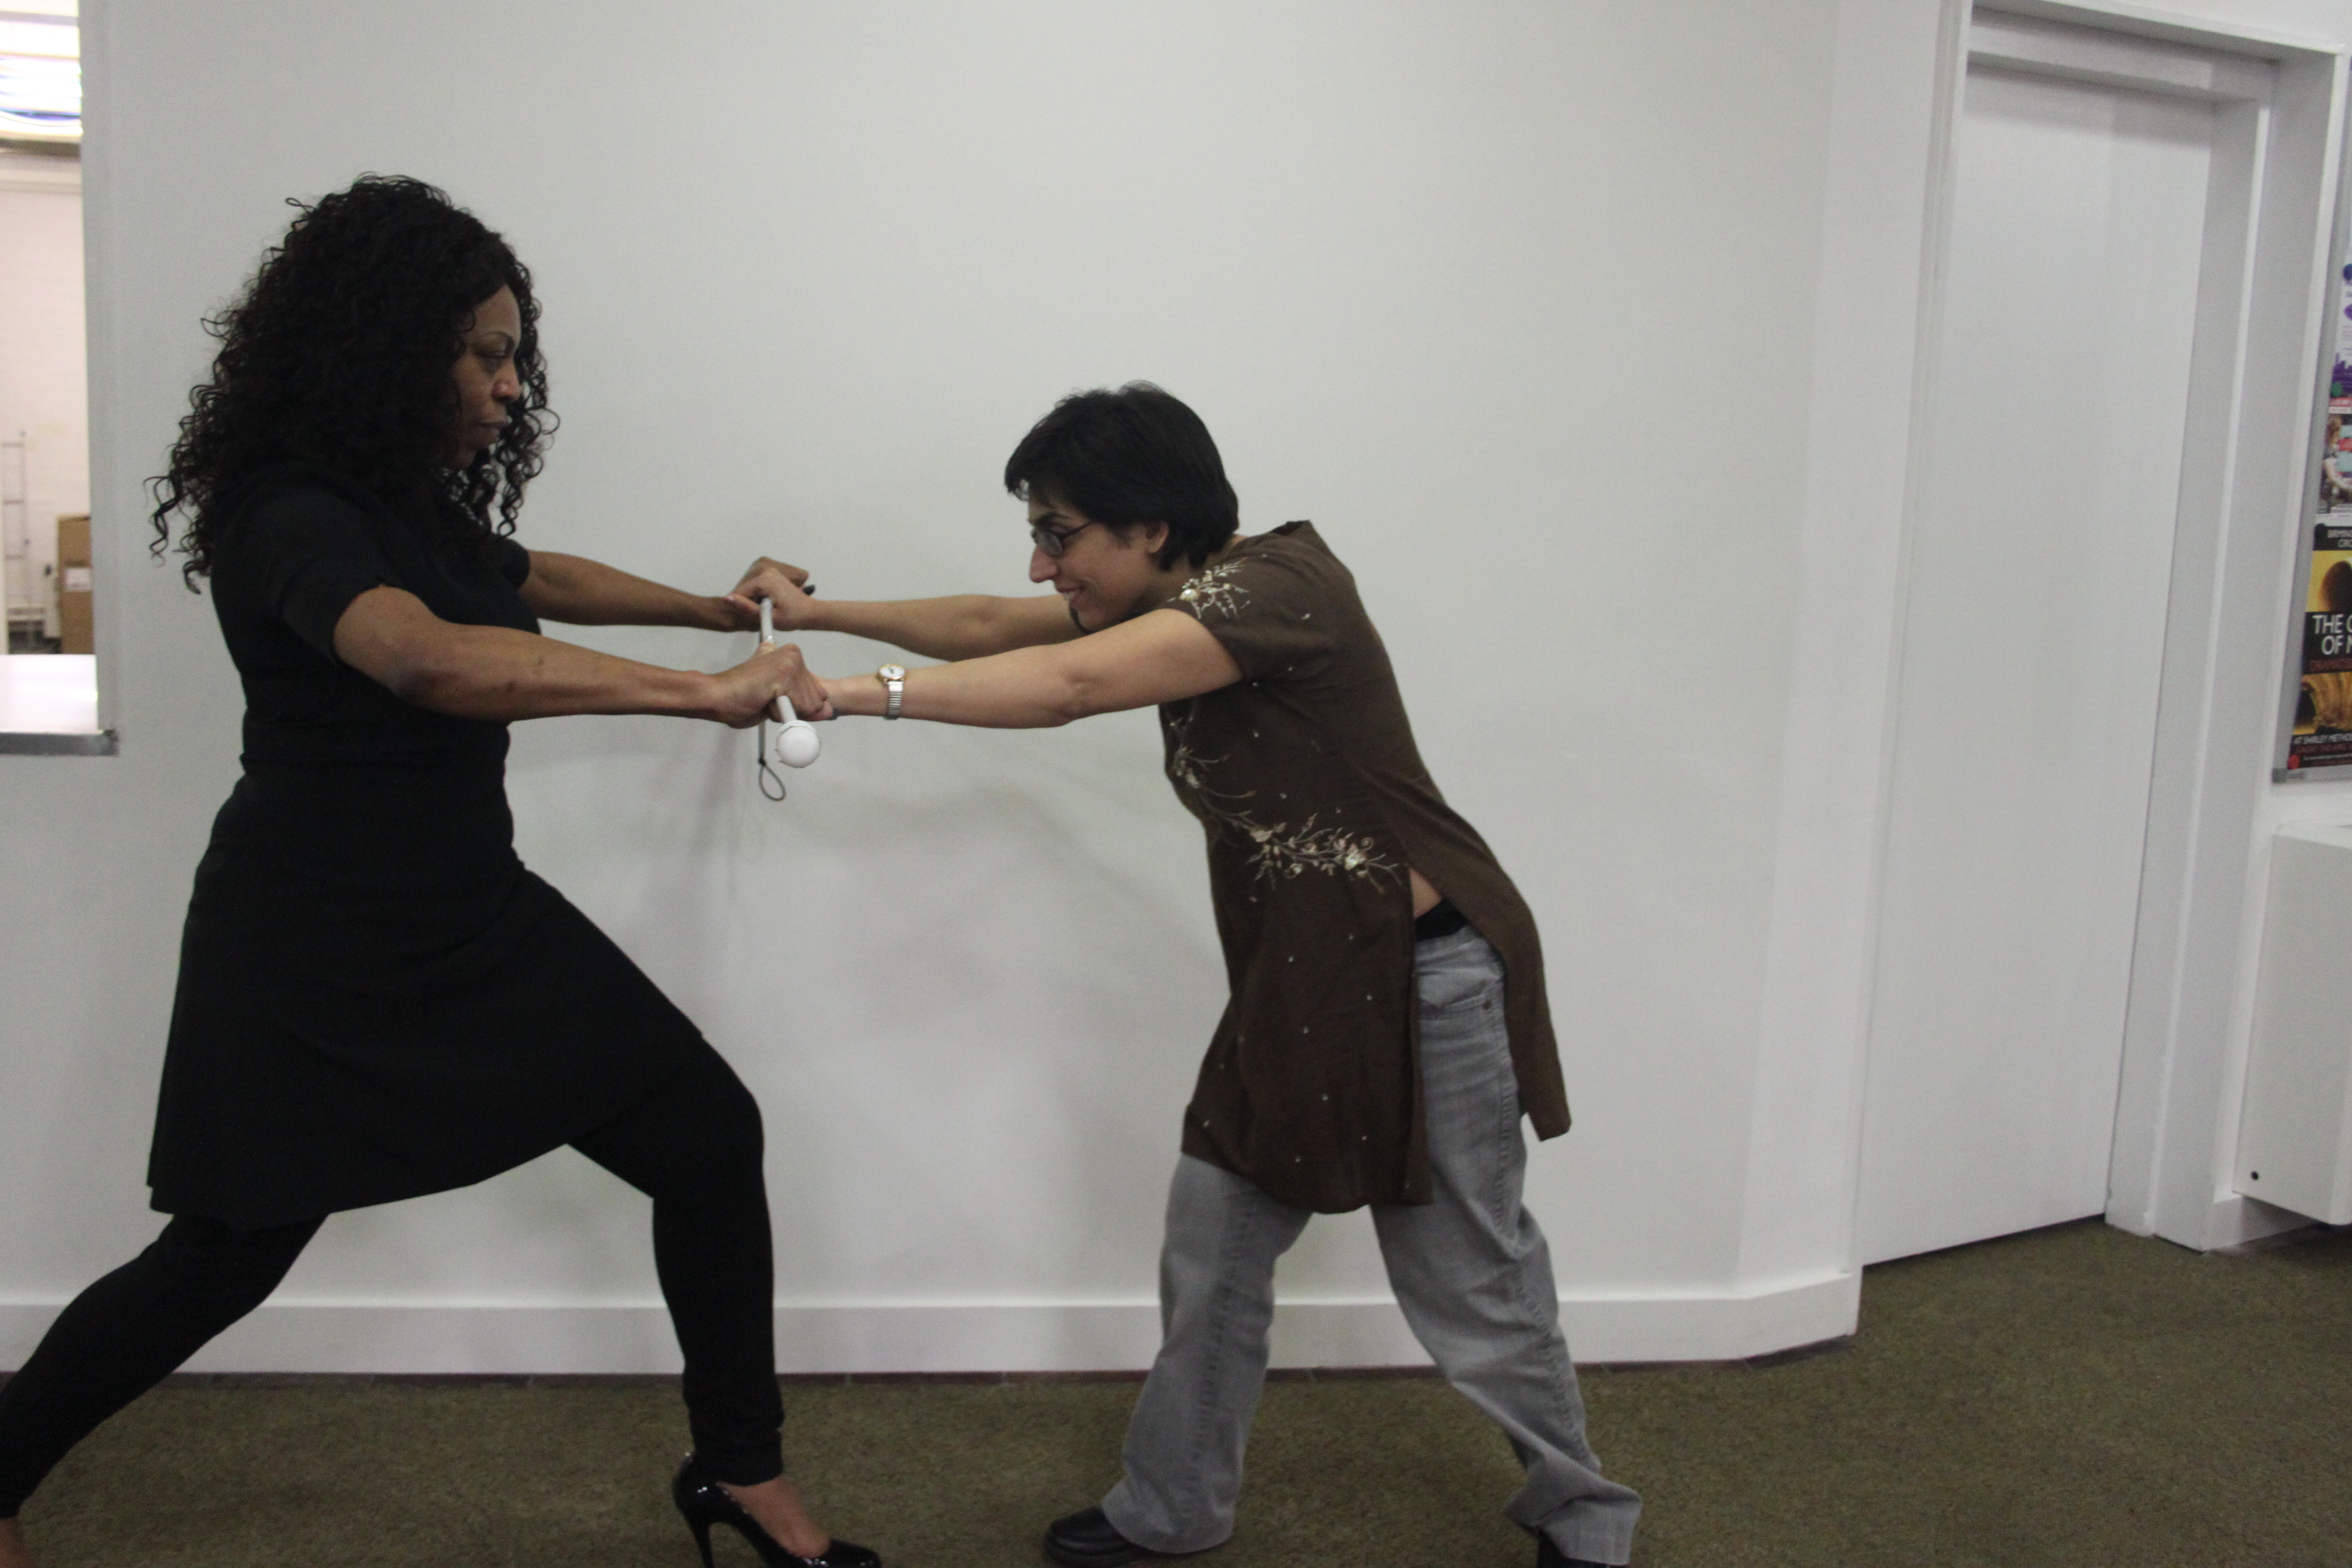 two women facing opposite one another in lunge position, both holding on to a white cane acting as a bar in between them. One resists the push/pull of the other.